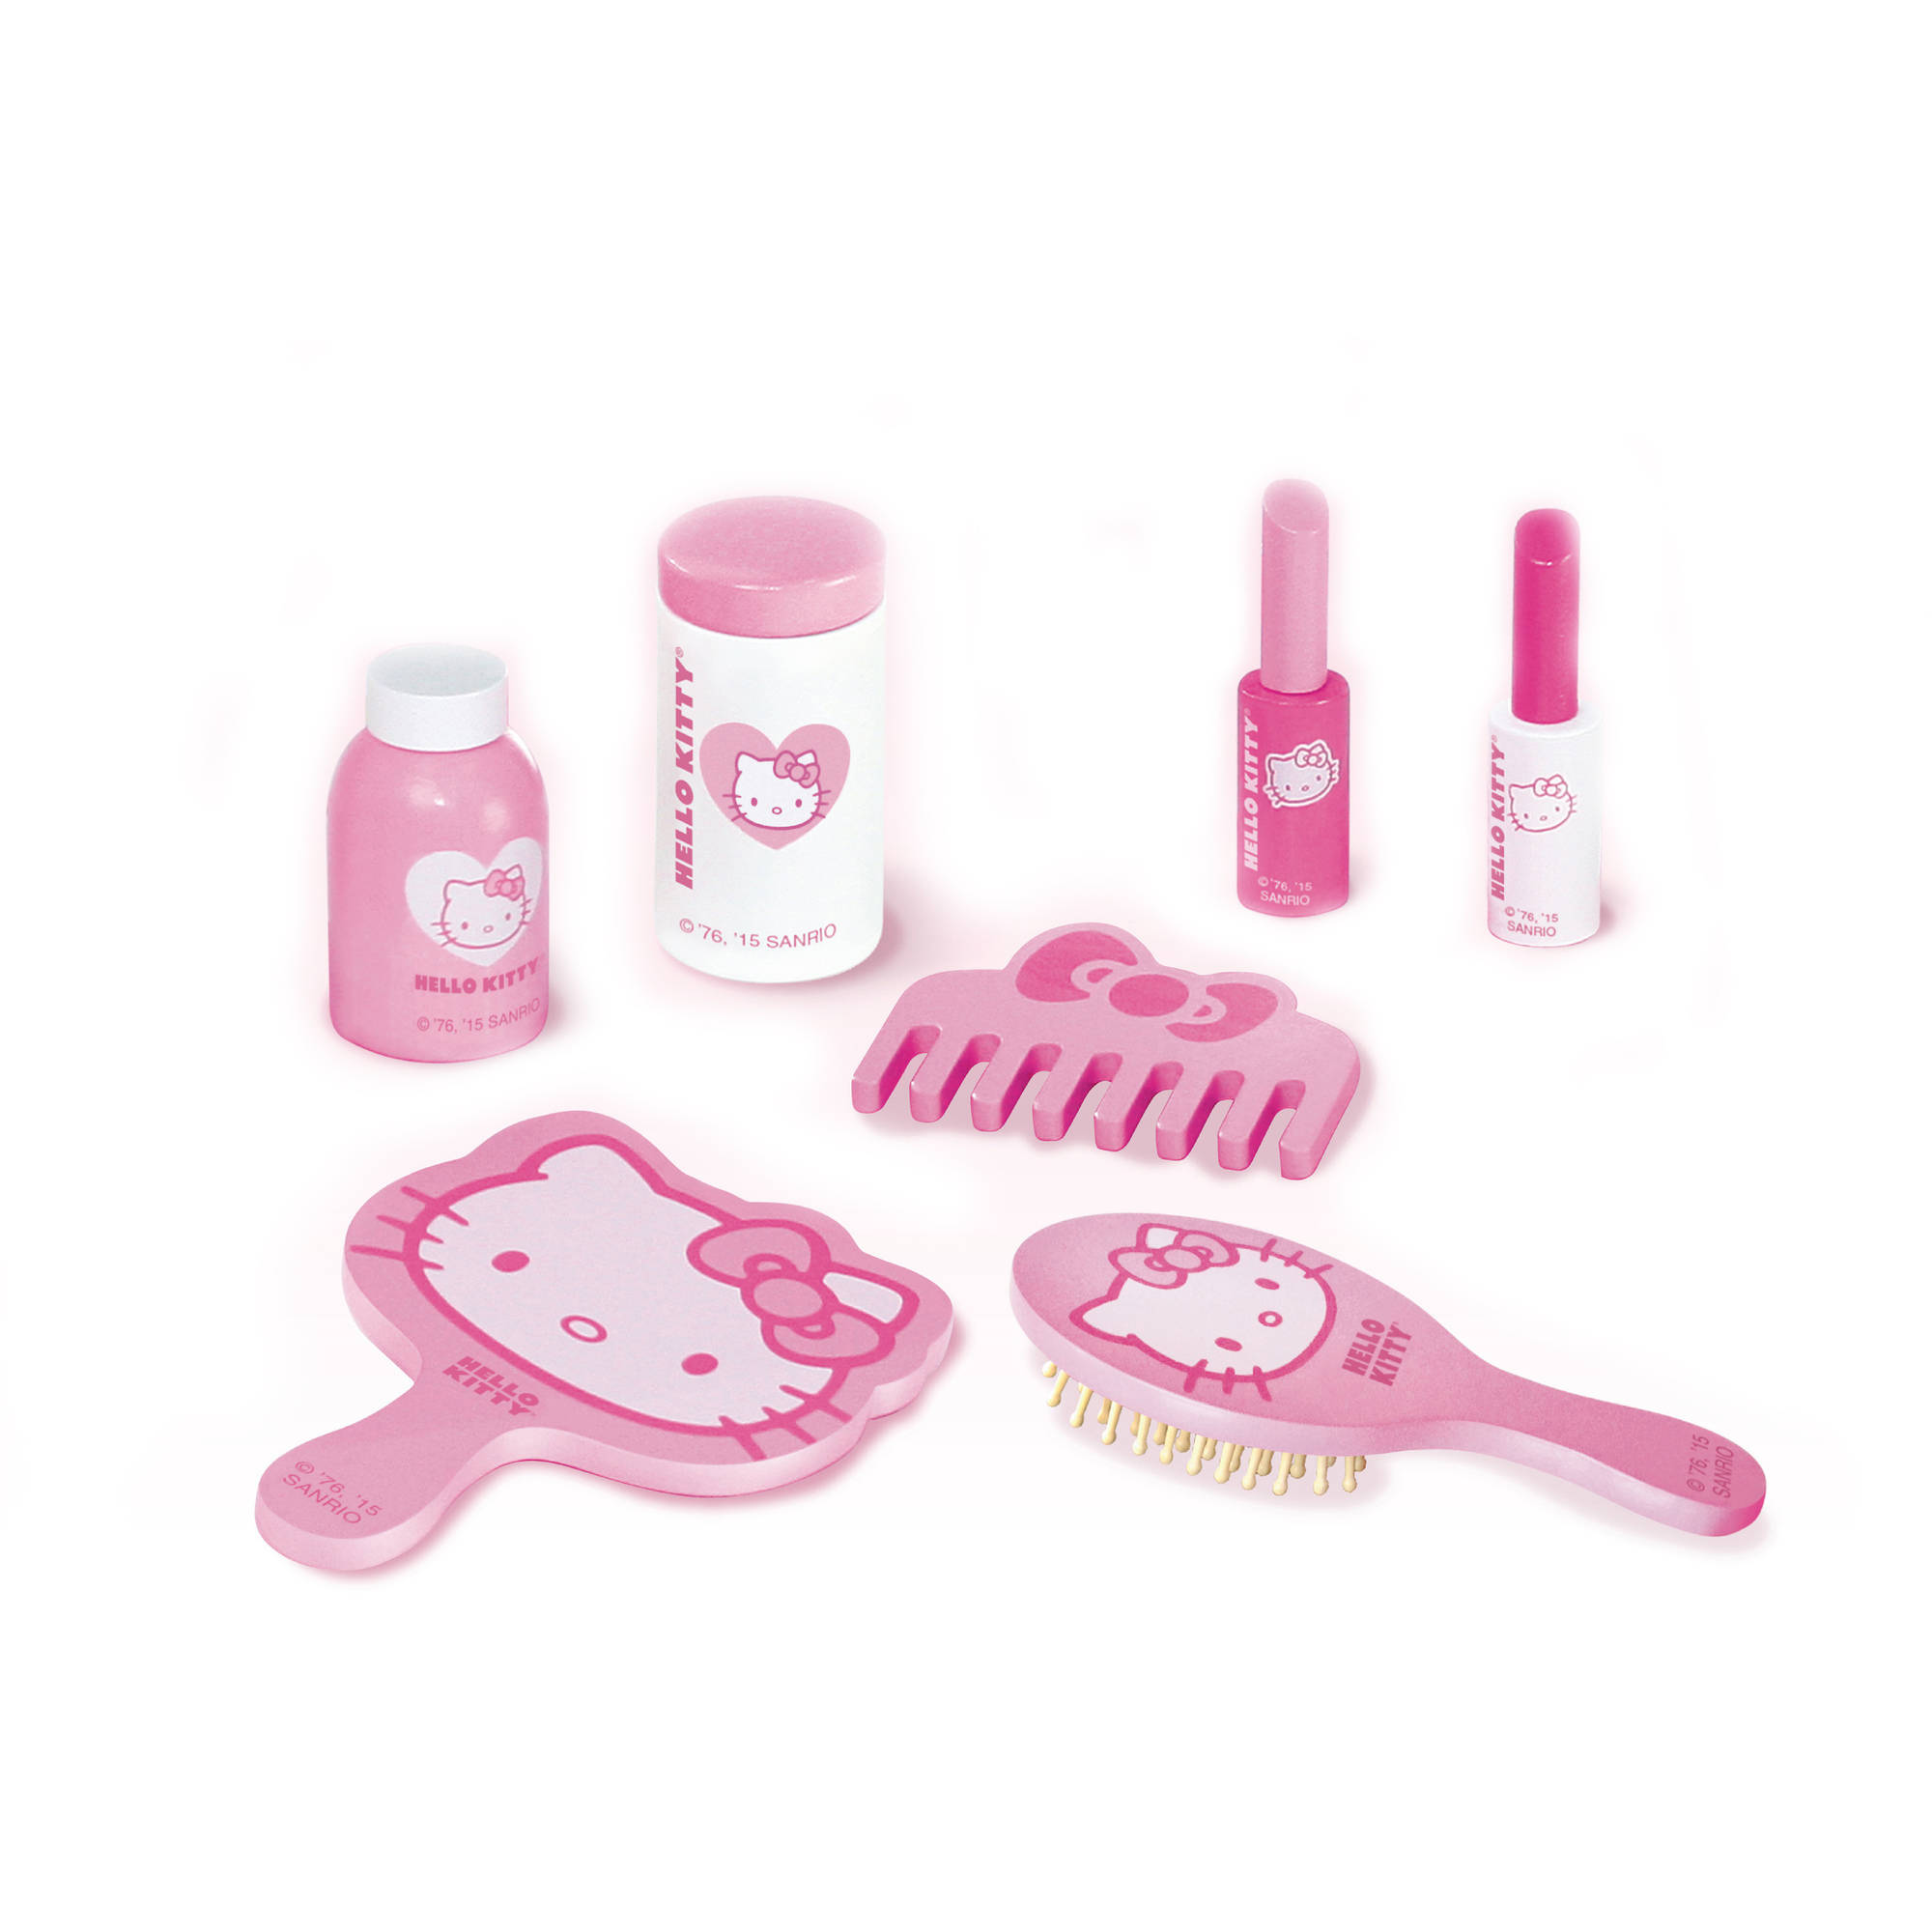 Jupiter Hello Kitty Vantiy Set